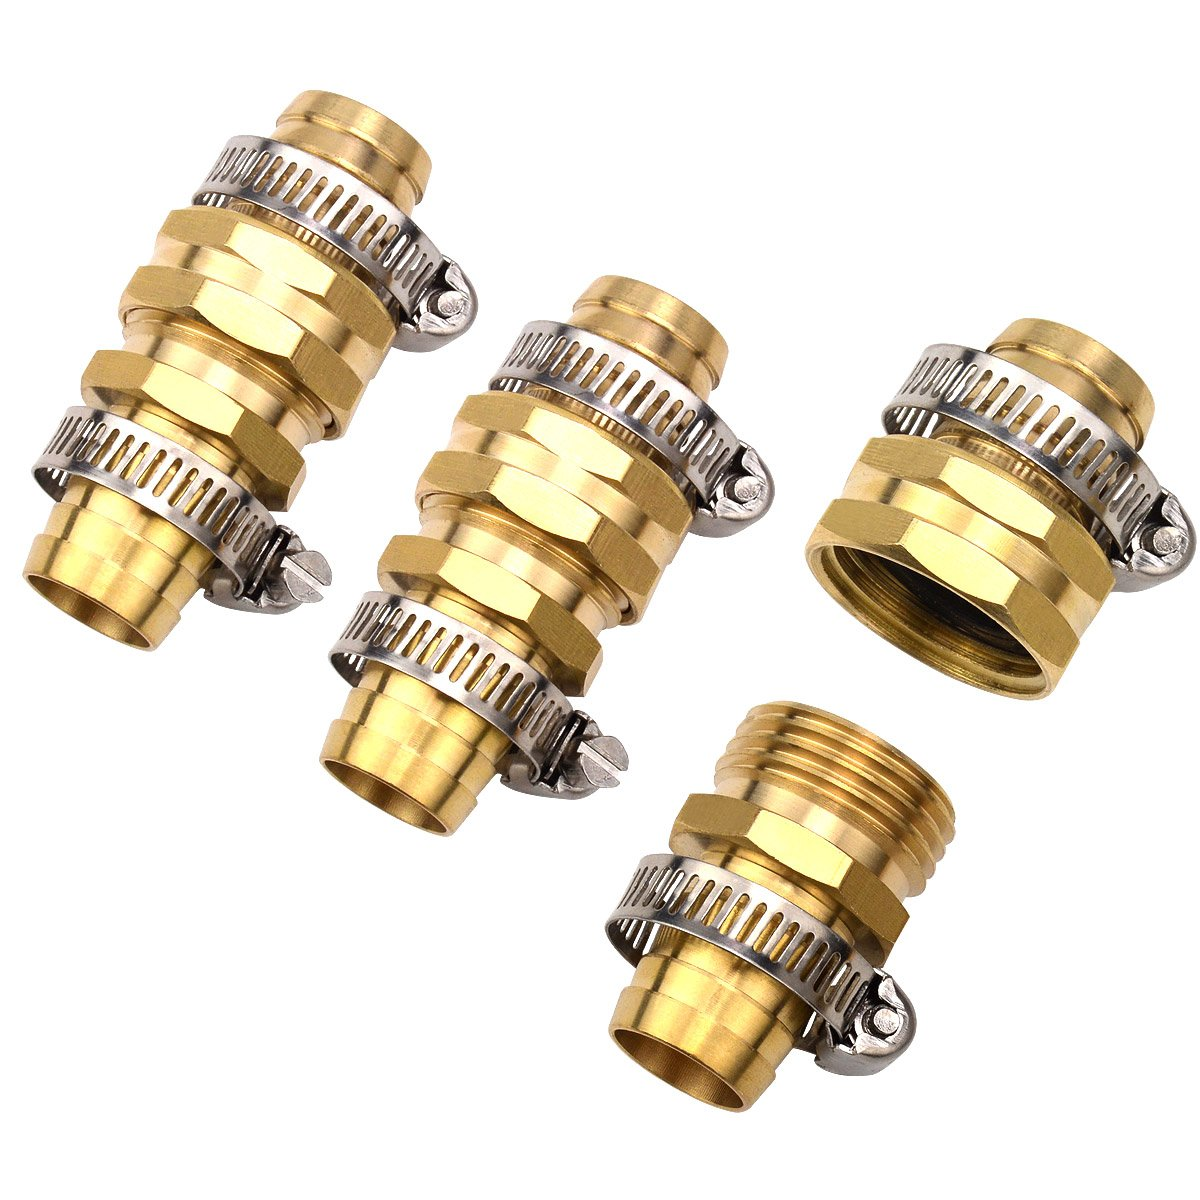 3Sets Brass 3/4'' Garden Hose Mender End Repair Male Female Connector with Stainless Clamp by Gardeningwill